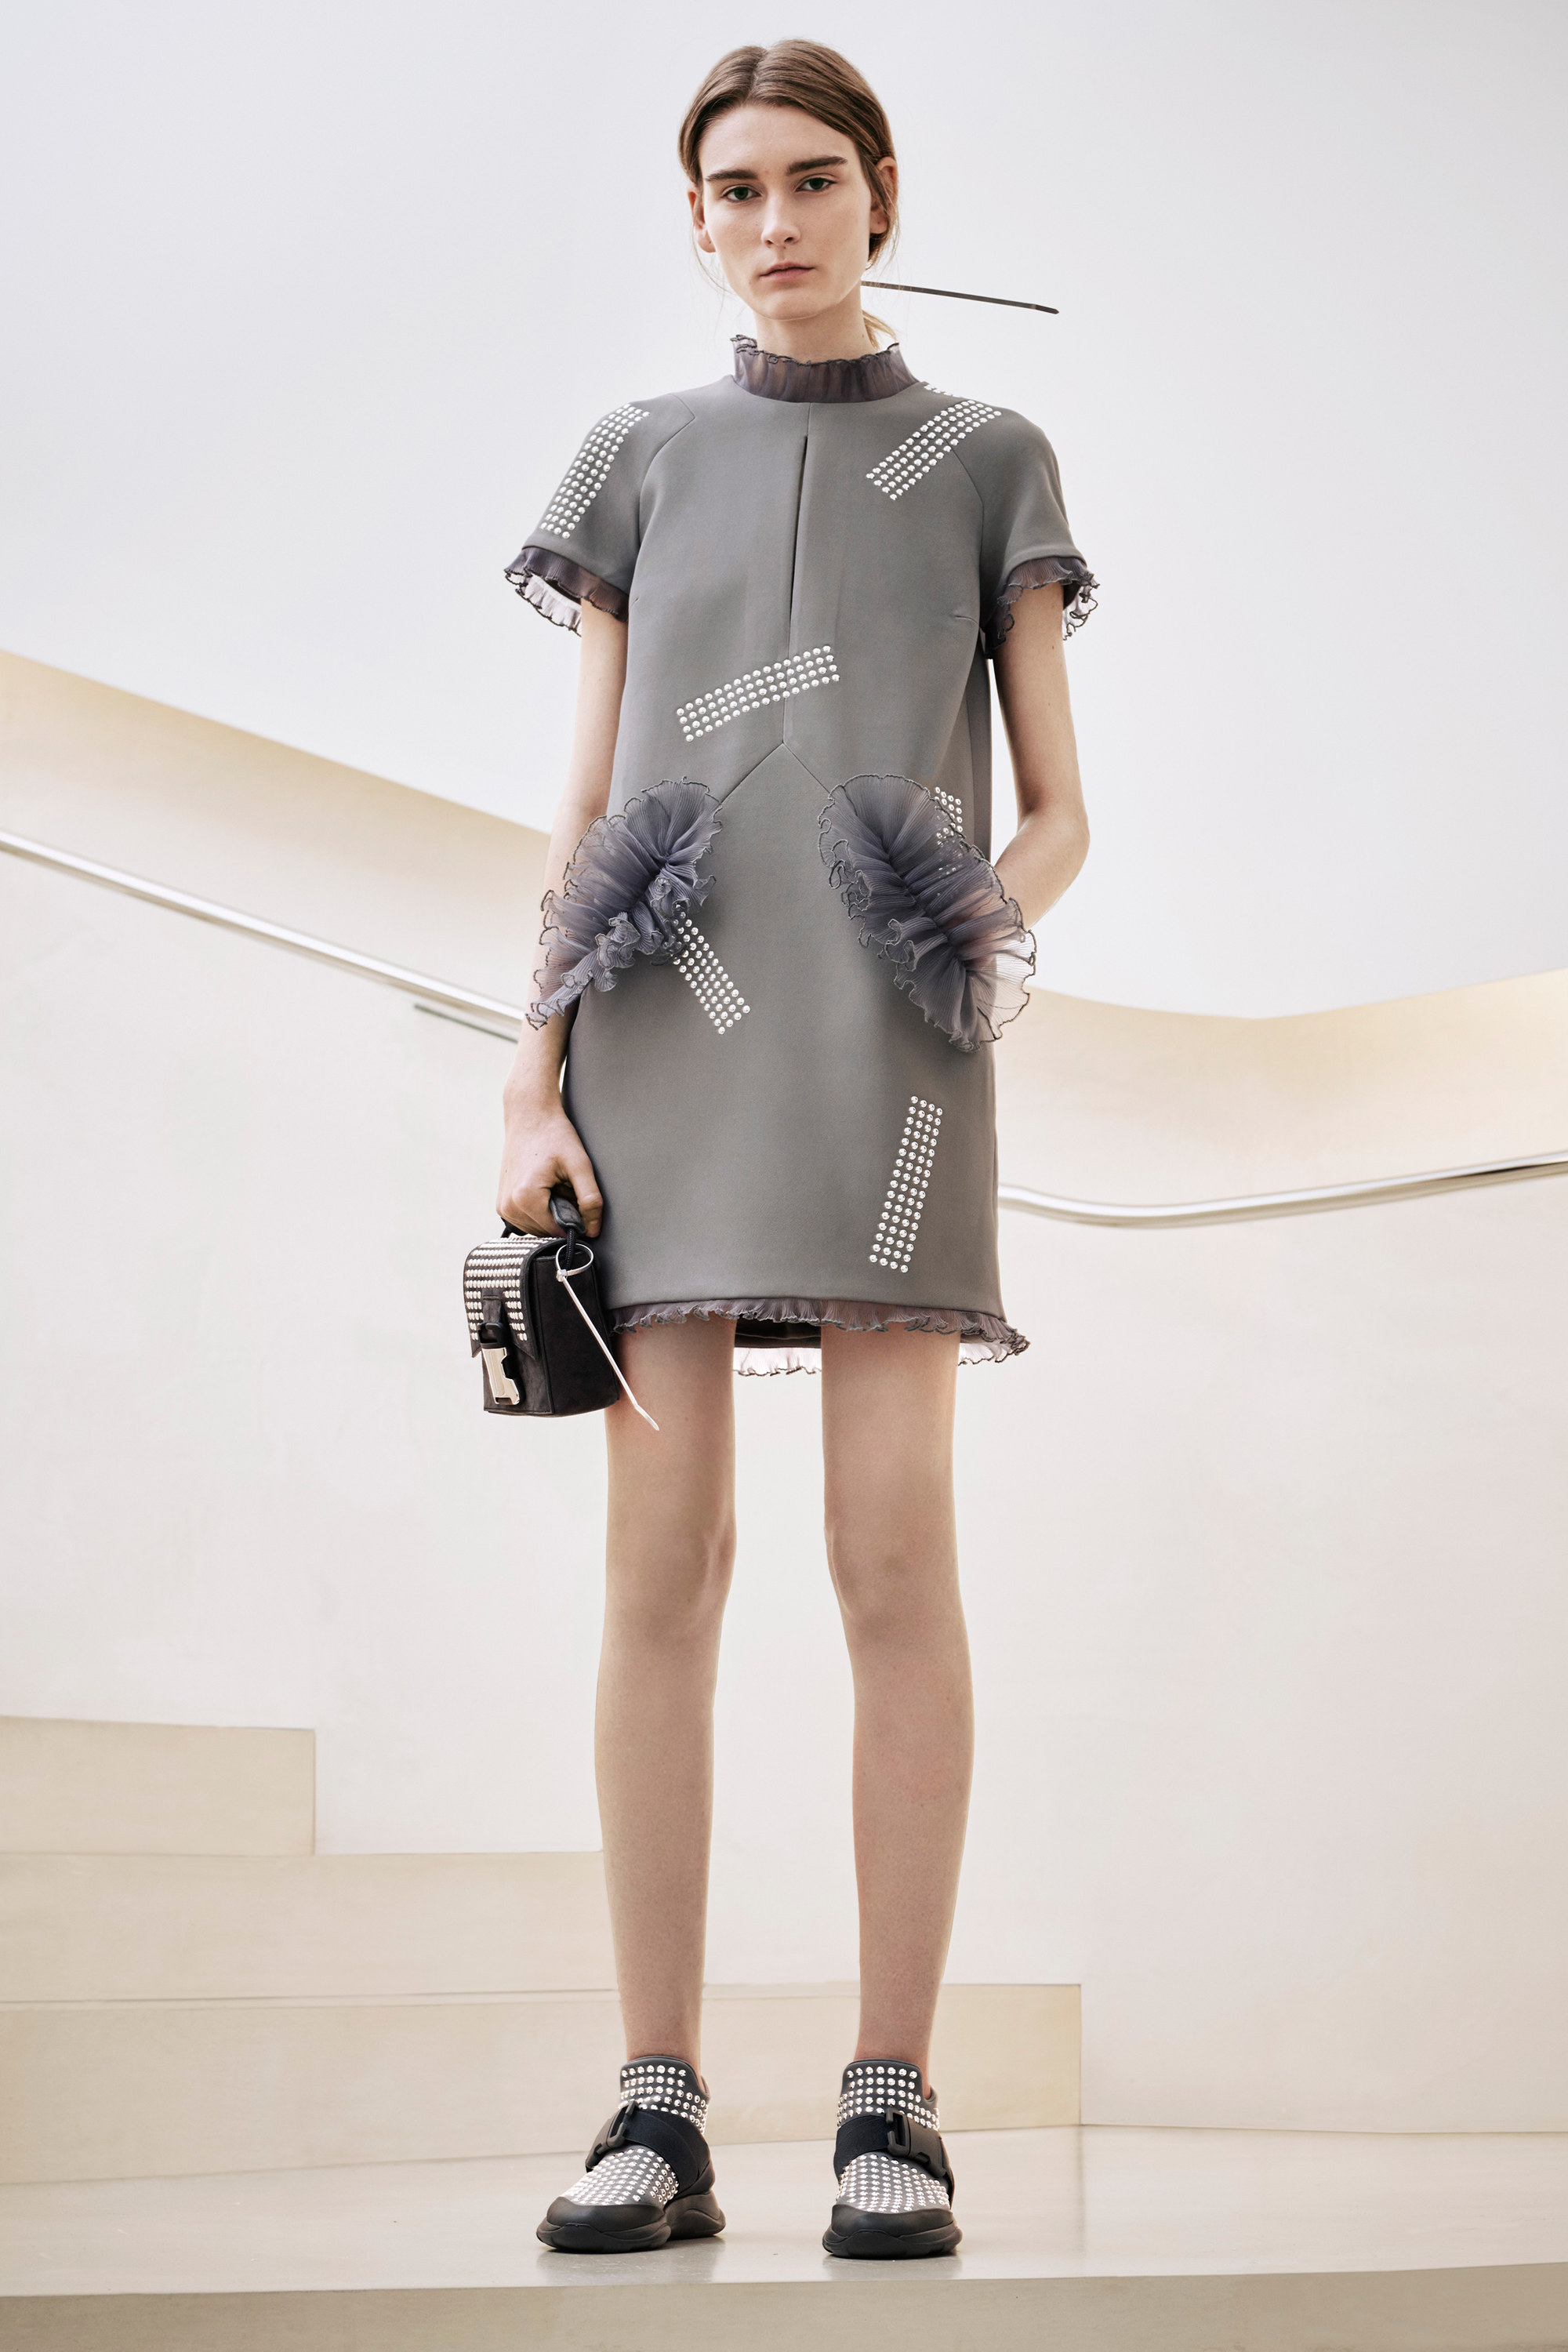 christopher-kane-pre-fall-2016-lookbook-34.jpg